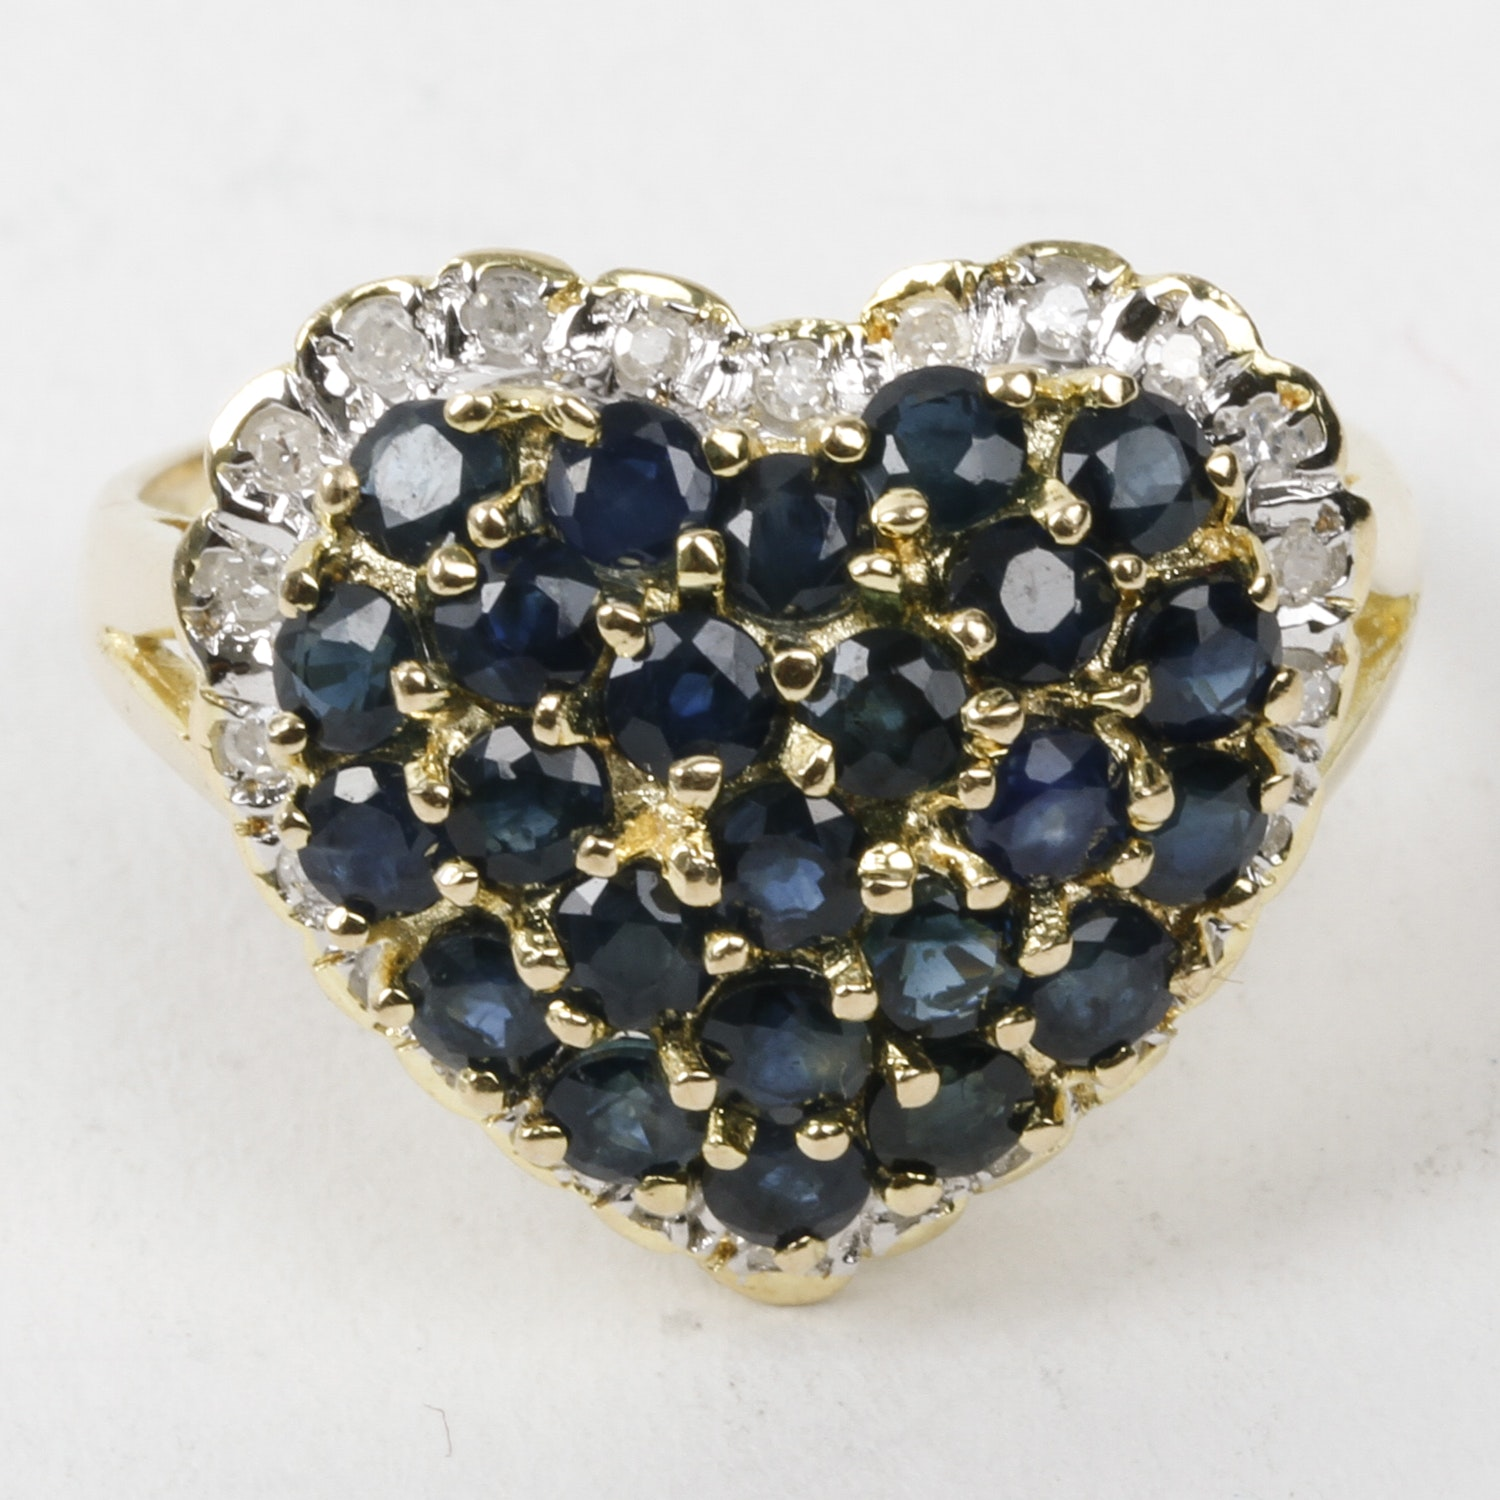 14K Yellow Gold, Sapphire, and Diamond Heart Cocktail Ring